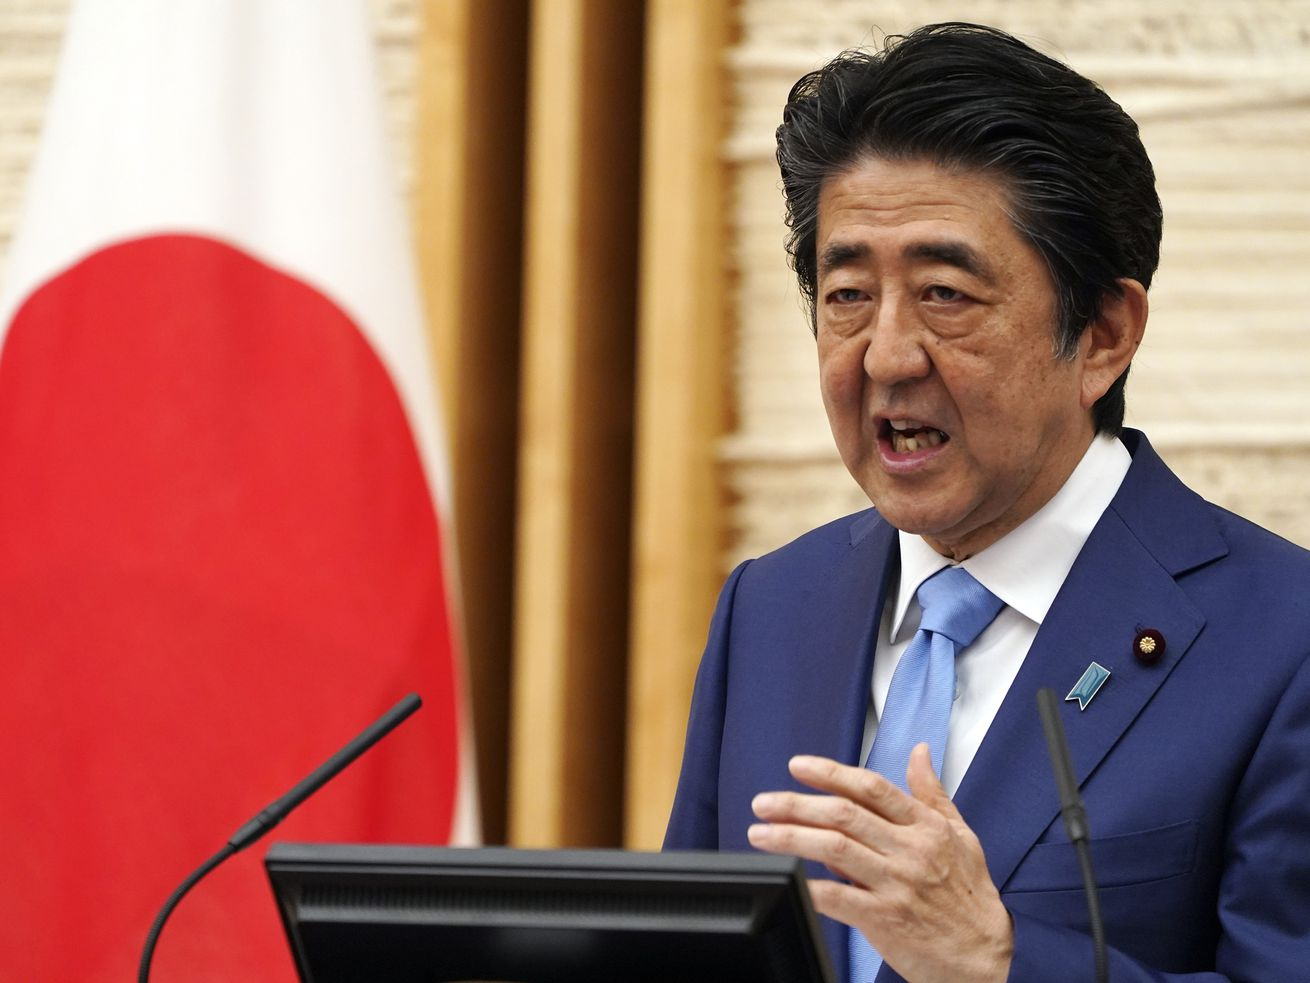 Japan's NHK and other media say Friday, Aug. 28, 2020, Prime Minister Shinzo Abe has expressed his intention to step down, citing his health. In this May 4, 2020, file photo, Abe speaks during a press conference at his official residence in Tokyo.